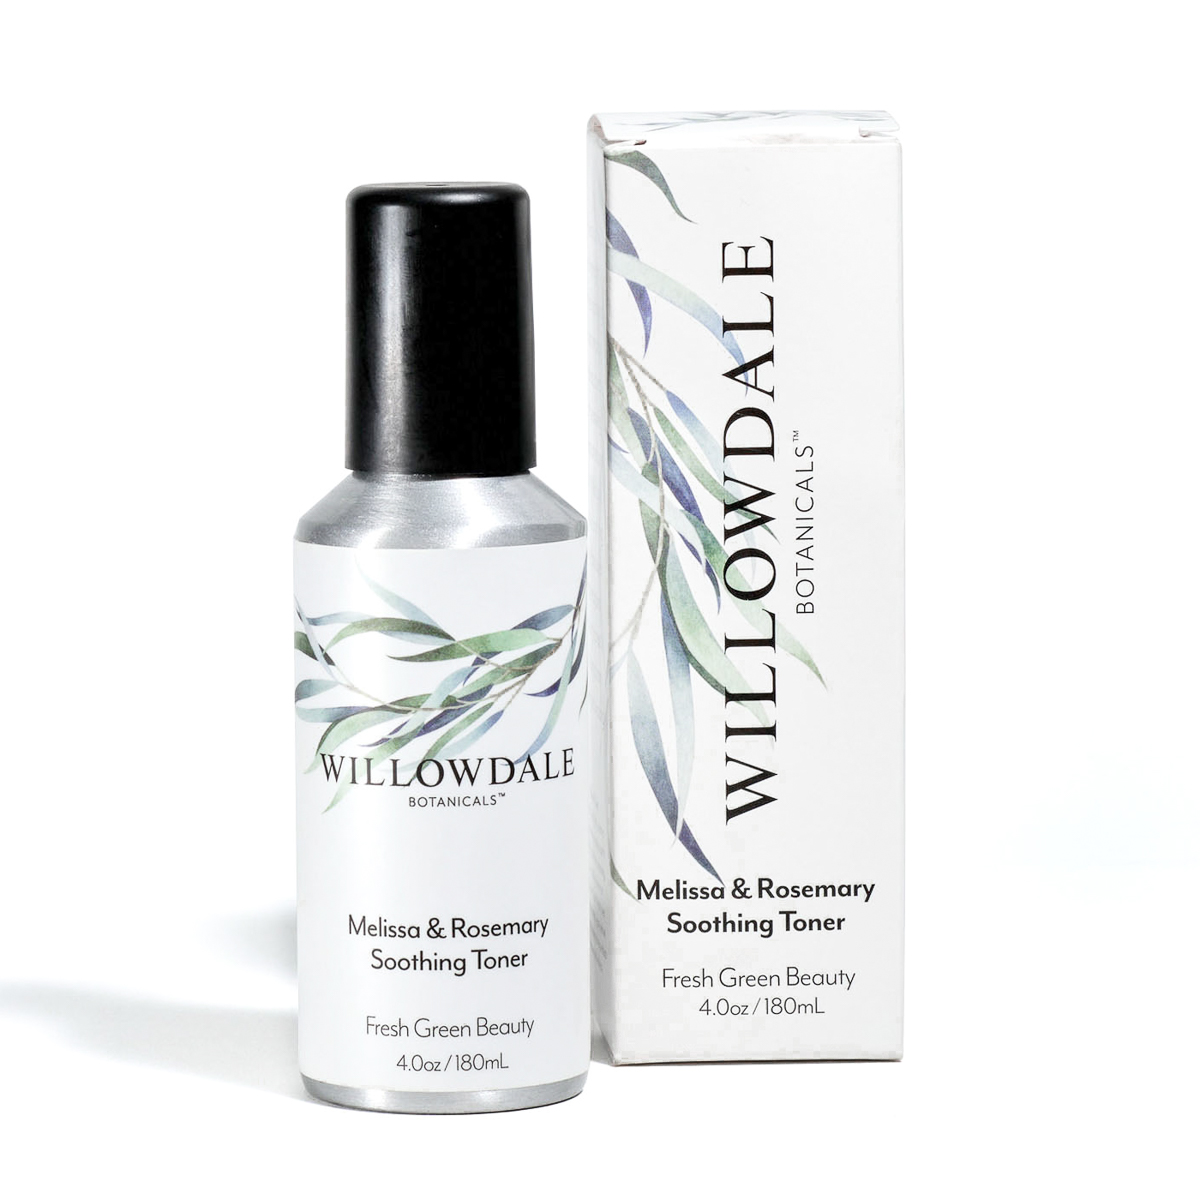 Hydrating toner that will help with redness, irritation, and hydration. Can also be used to set your makeup.